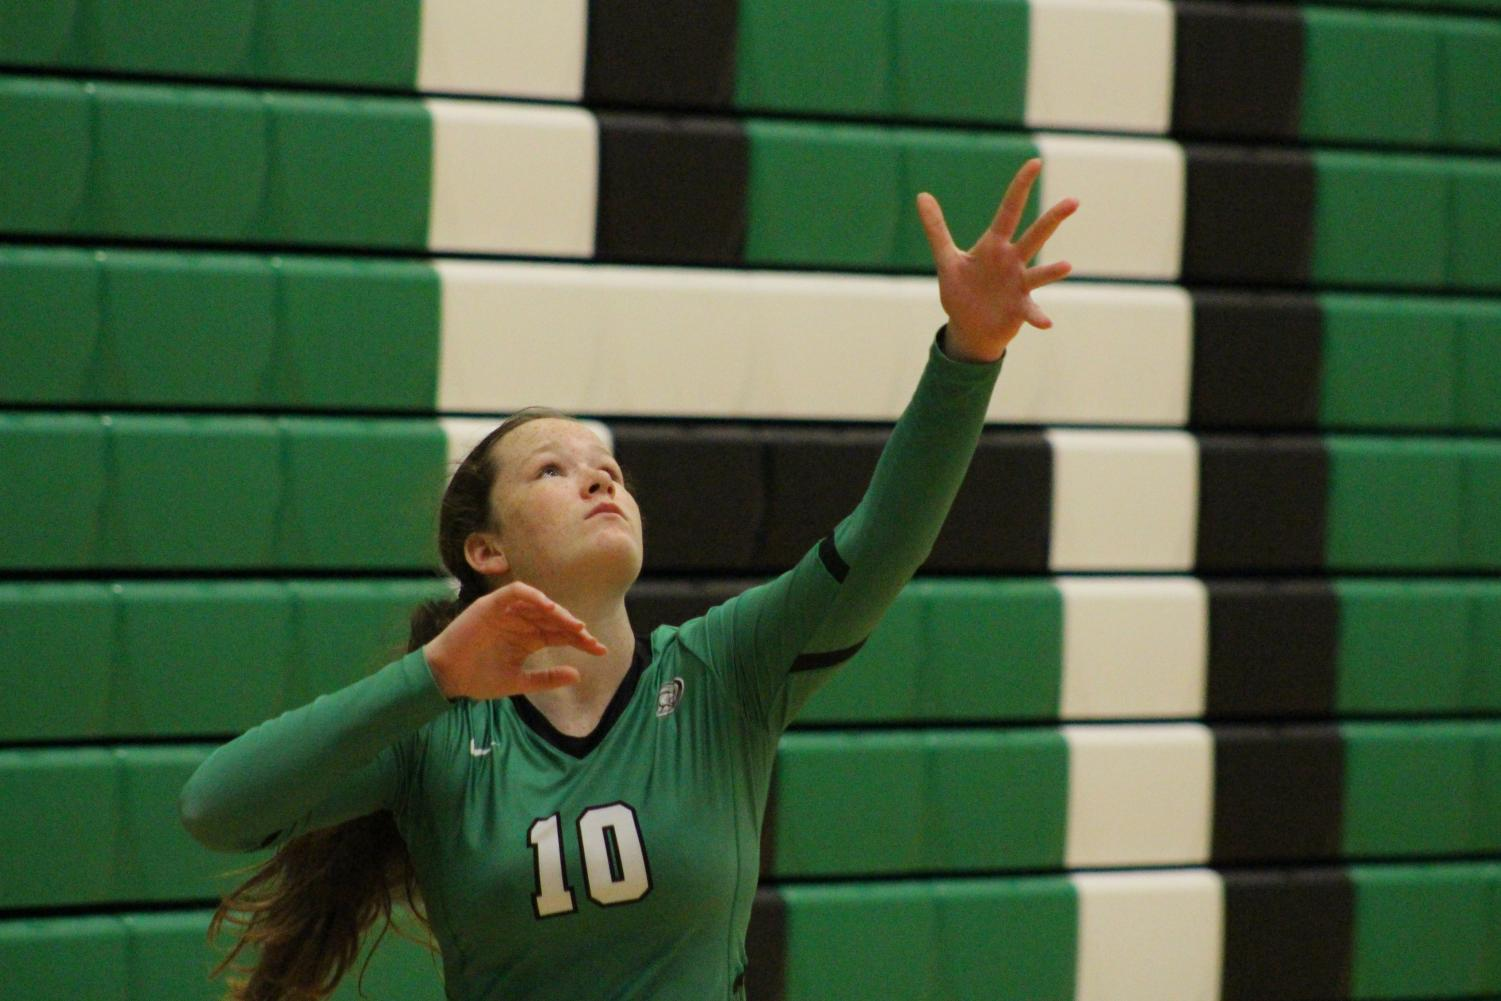 Freshman+Addy+Brown+serves+the+ball+in+the+first+set+against+Newton